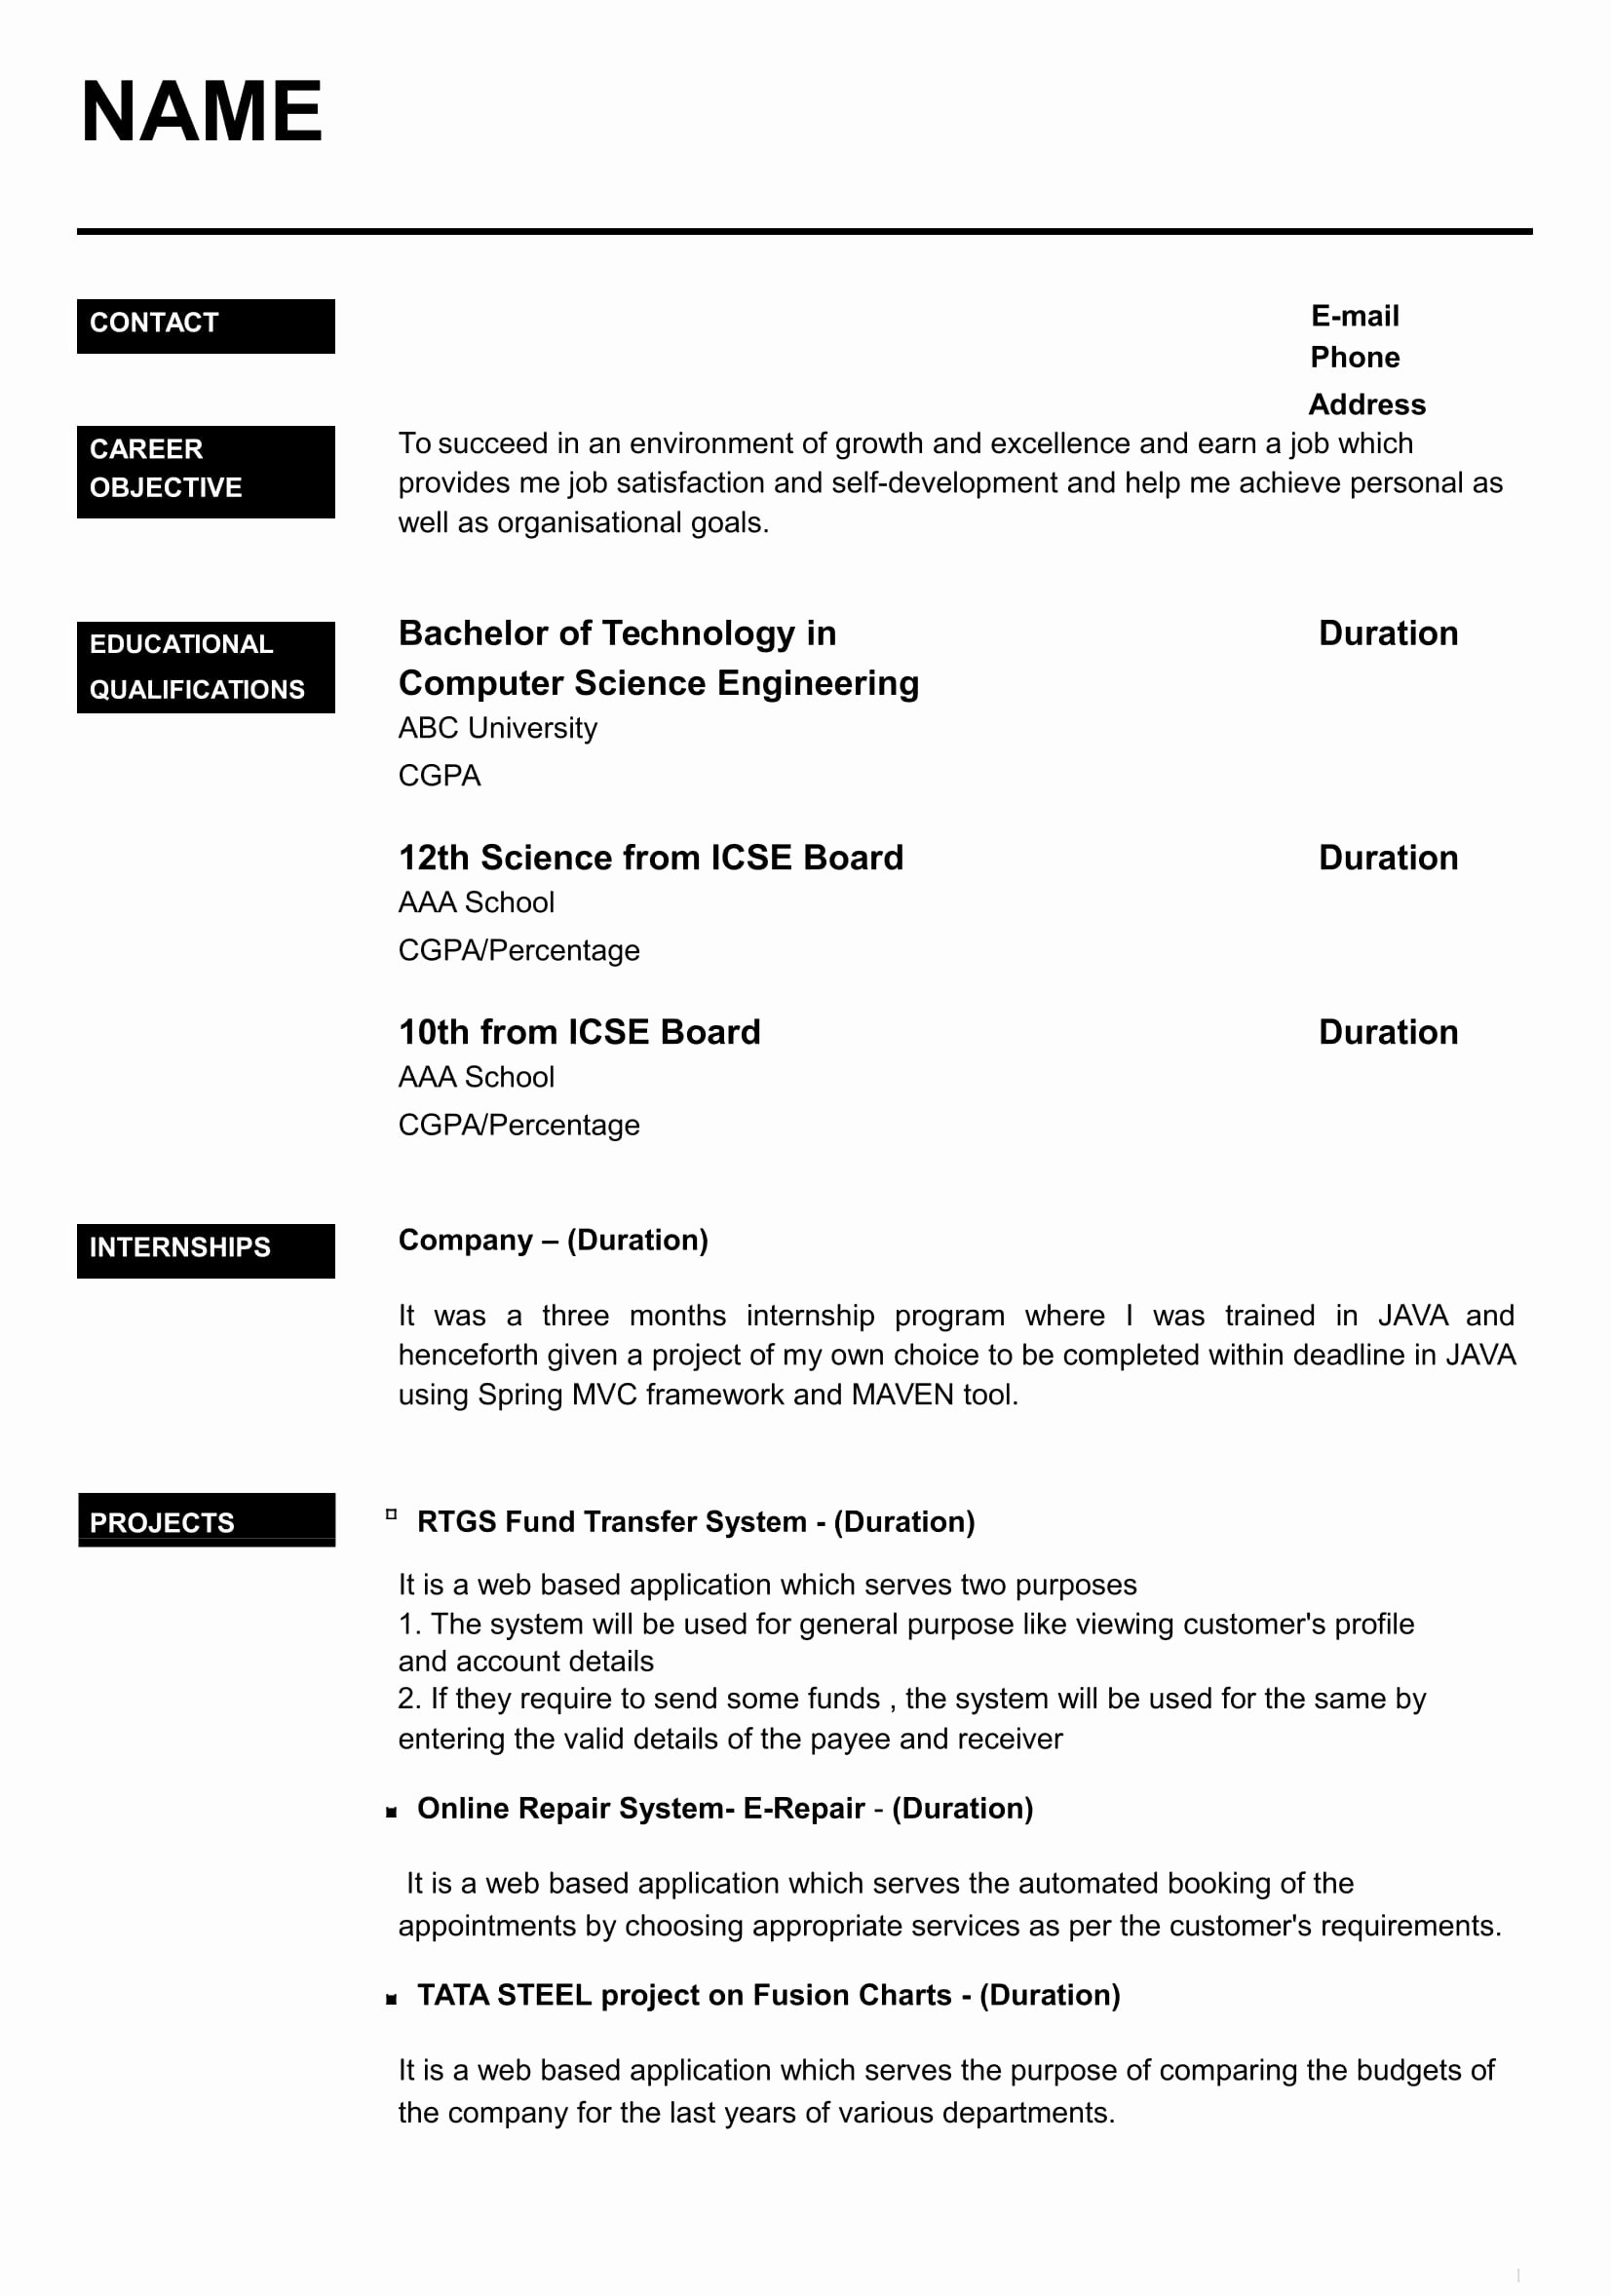 Resume with Picture Template New 32 Resume Templates for Freshers Download Free Word format